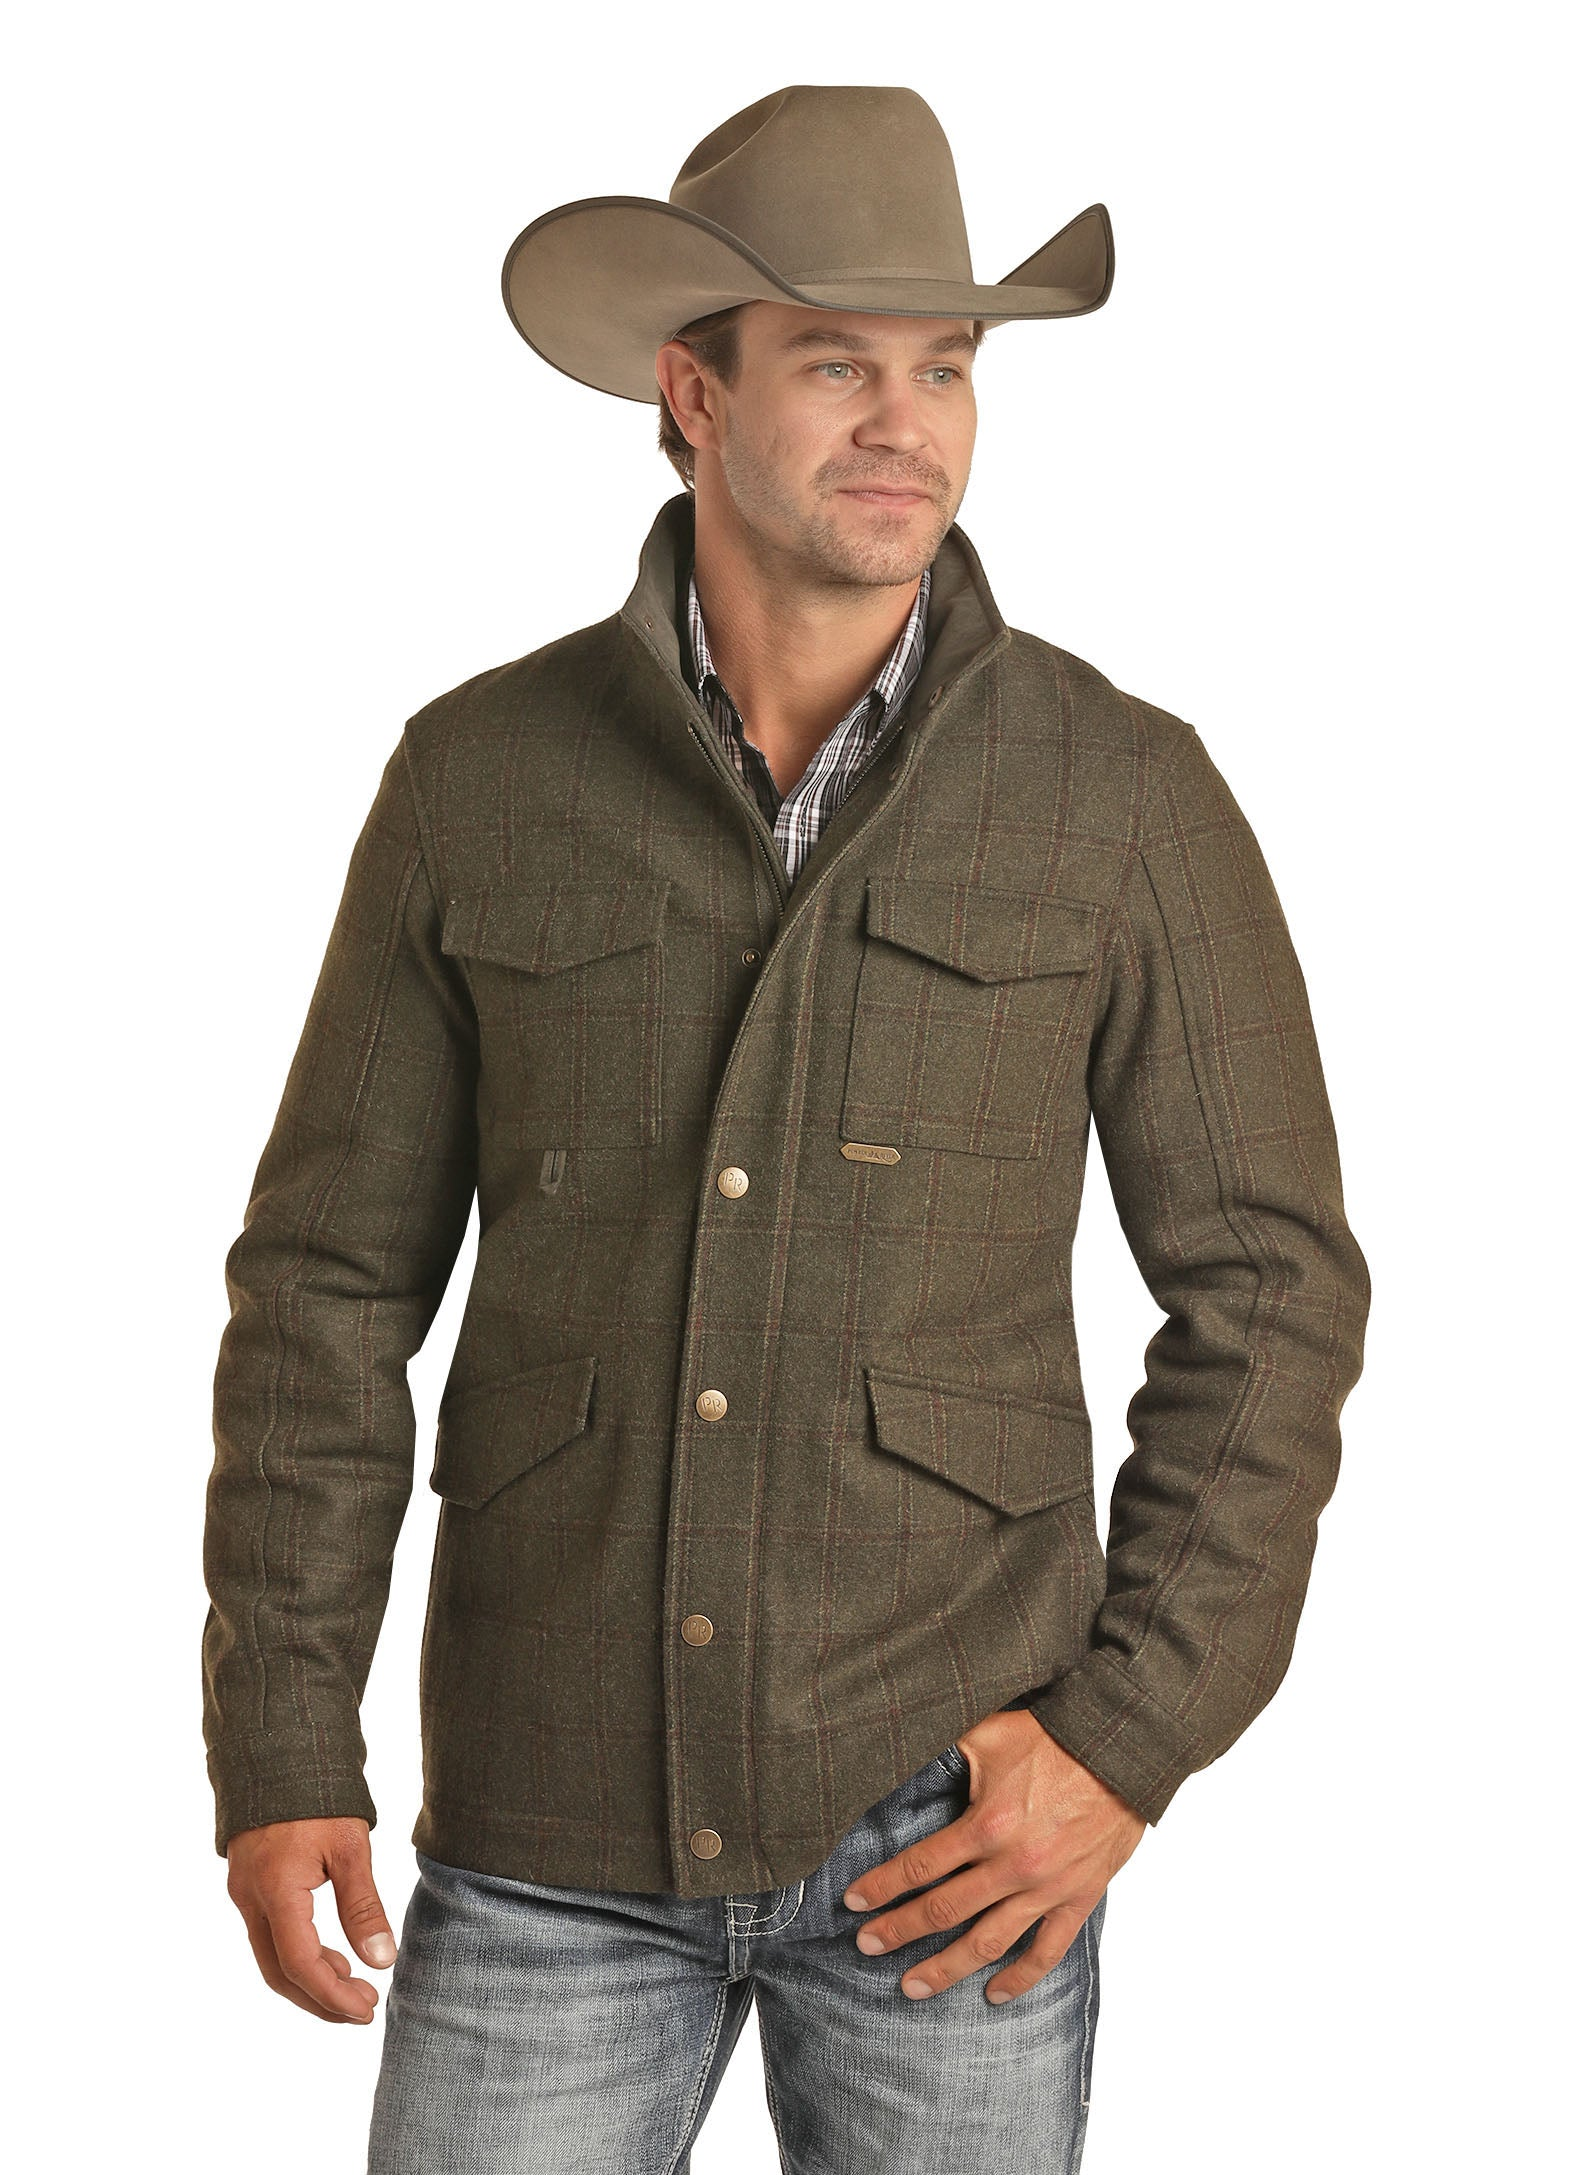 'Powder River' Men's Heather Plaid Wool Jacket - Olive Heather (Ext. sizes)